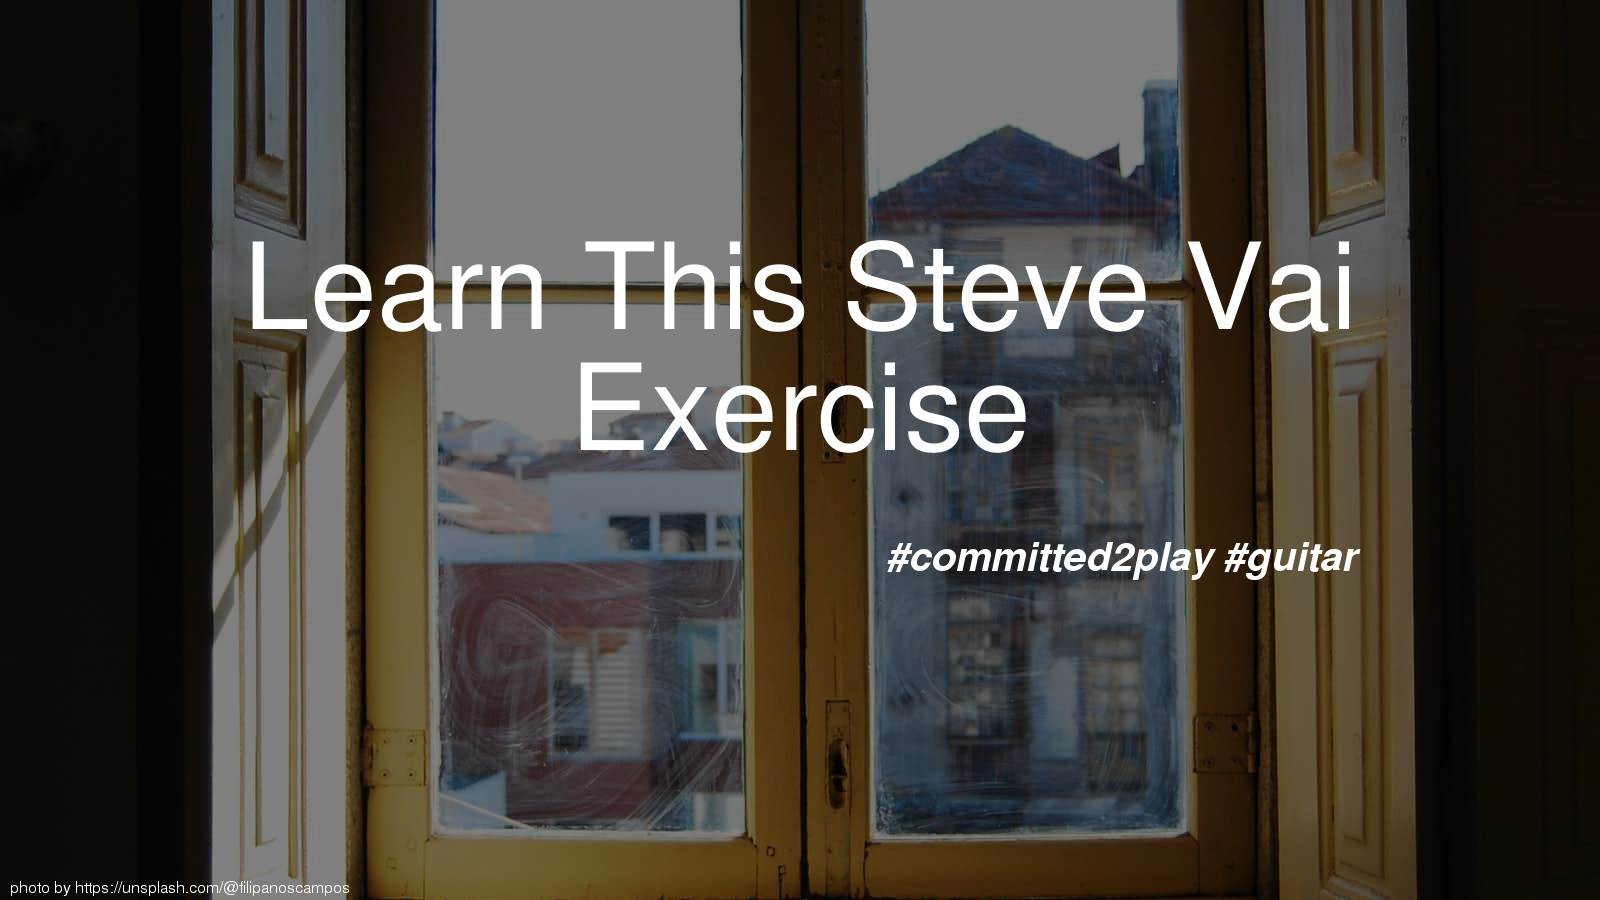 Learn This Steve Vai Exercise